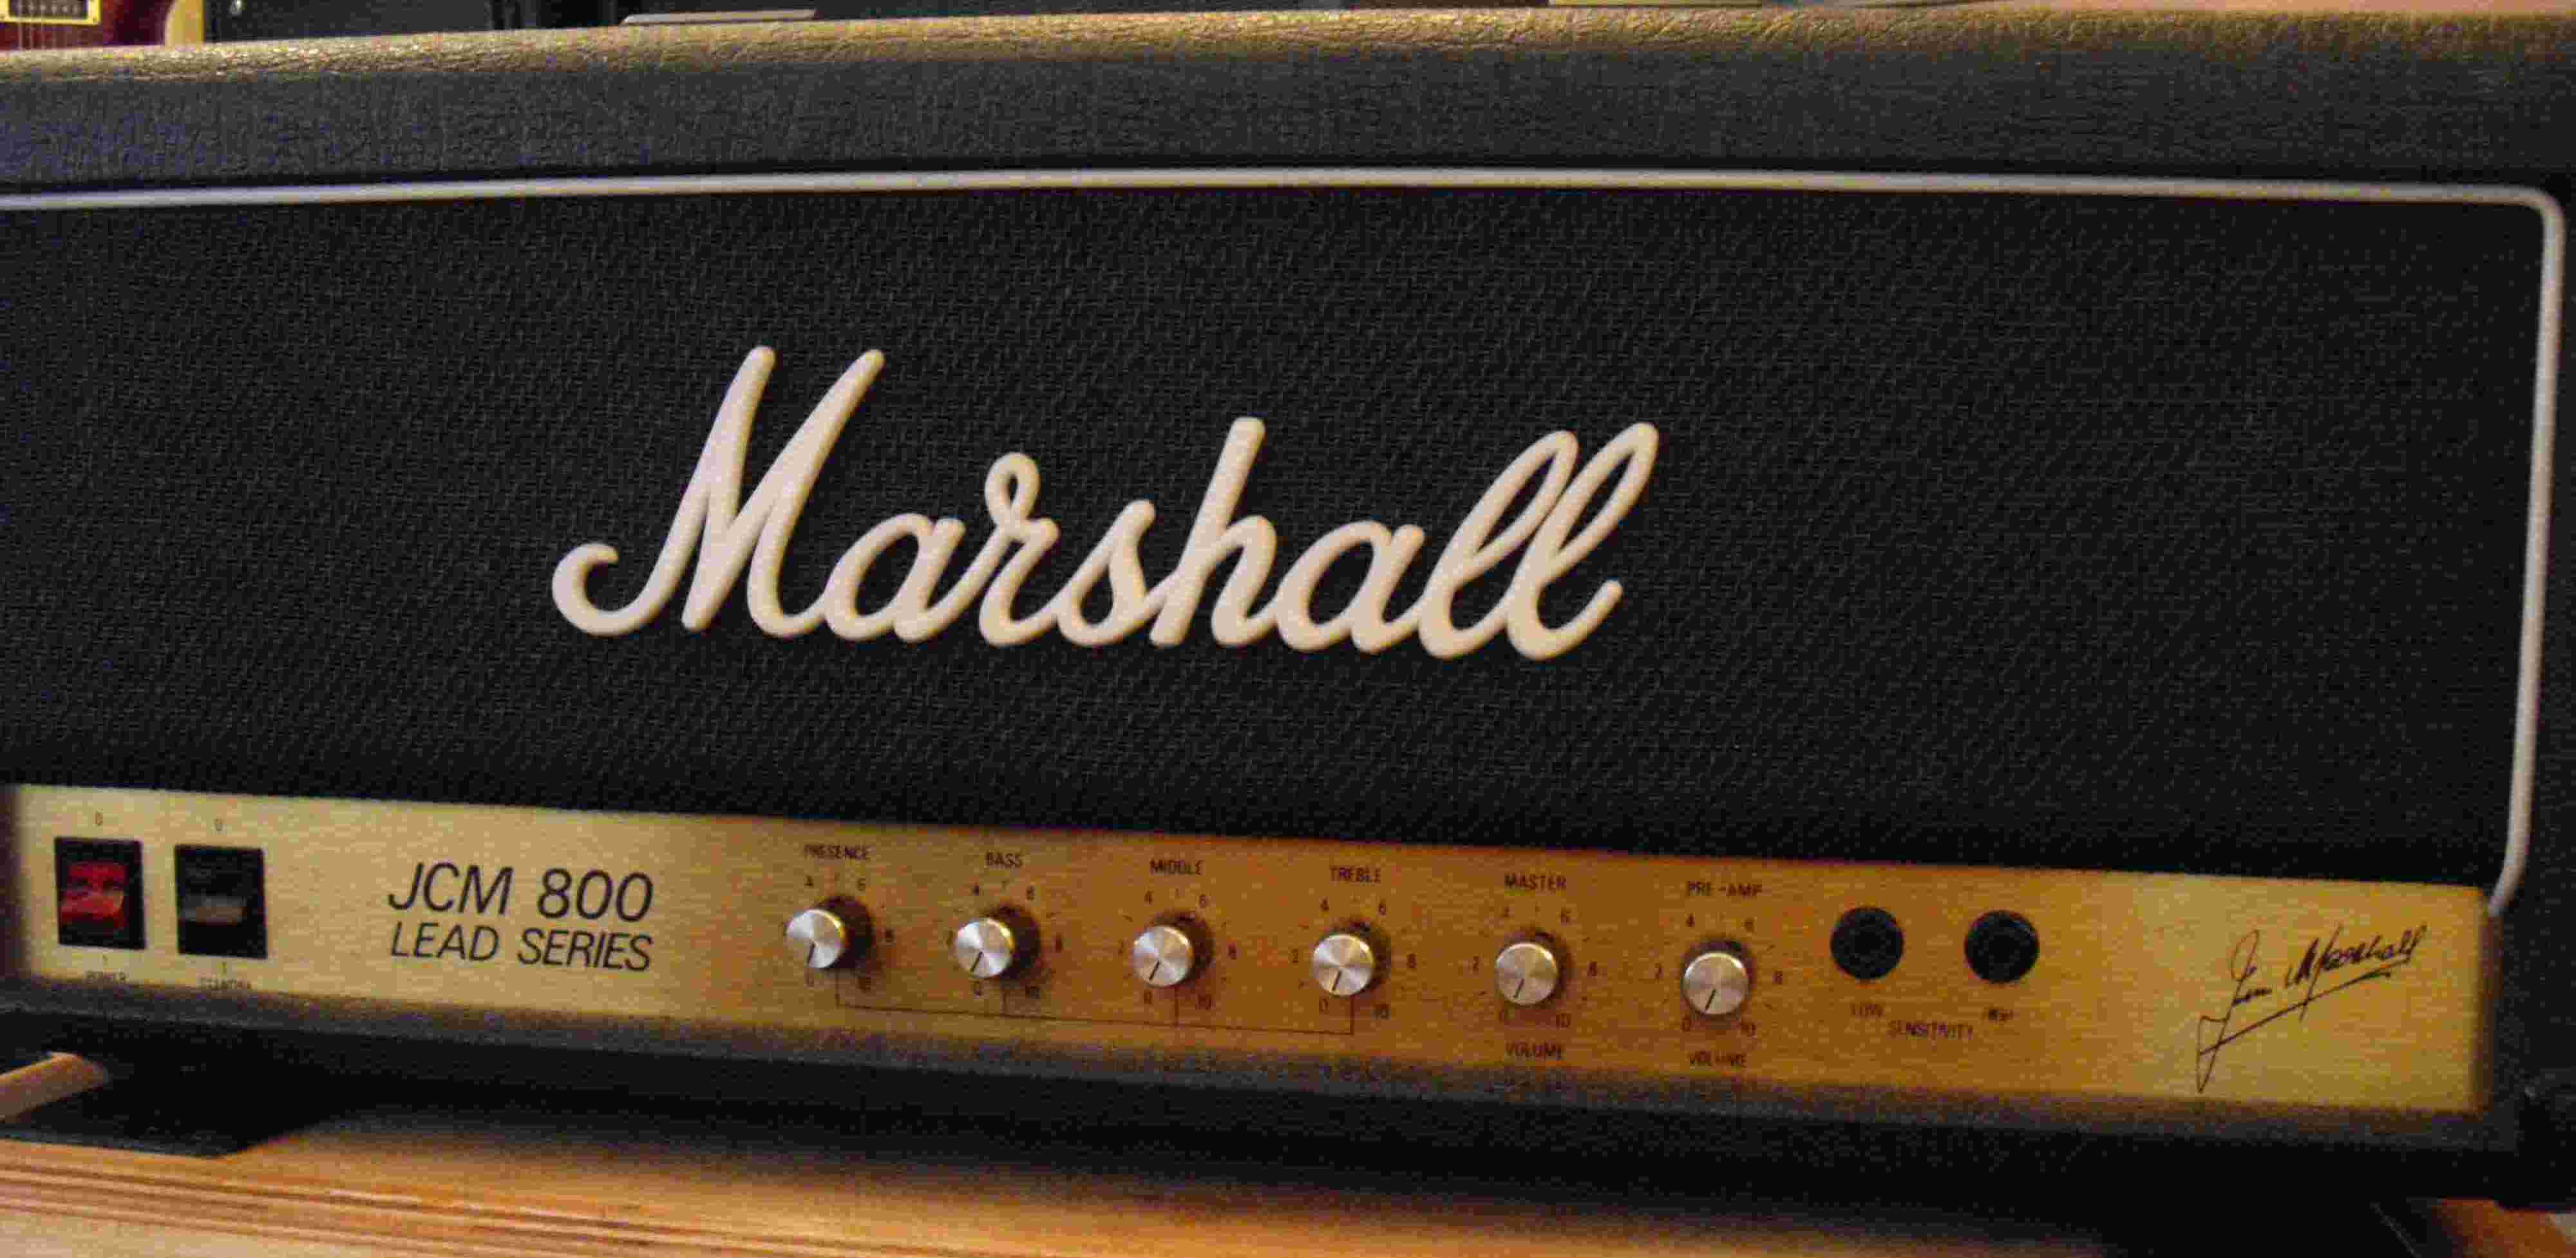 The Marshall cabinet database